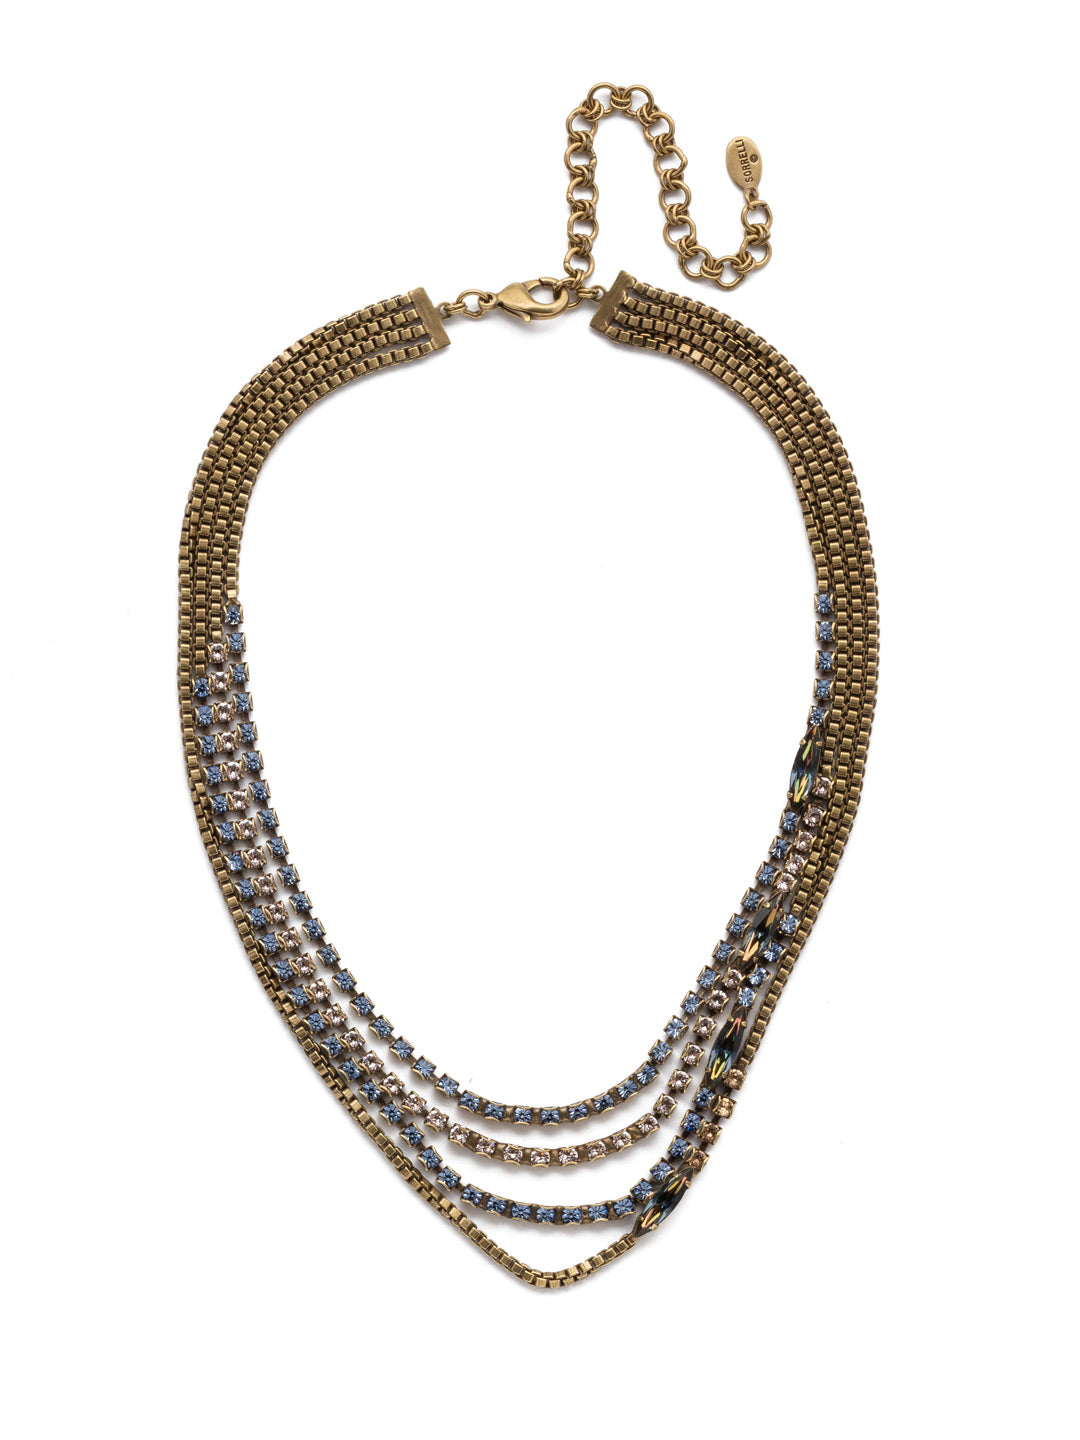 January Layered Necklace - NEP12AGSDE